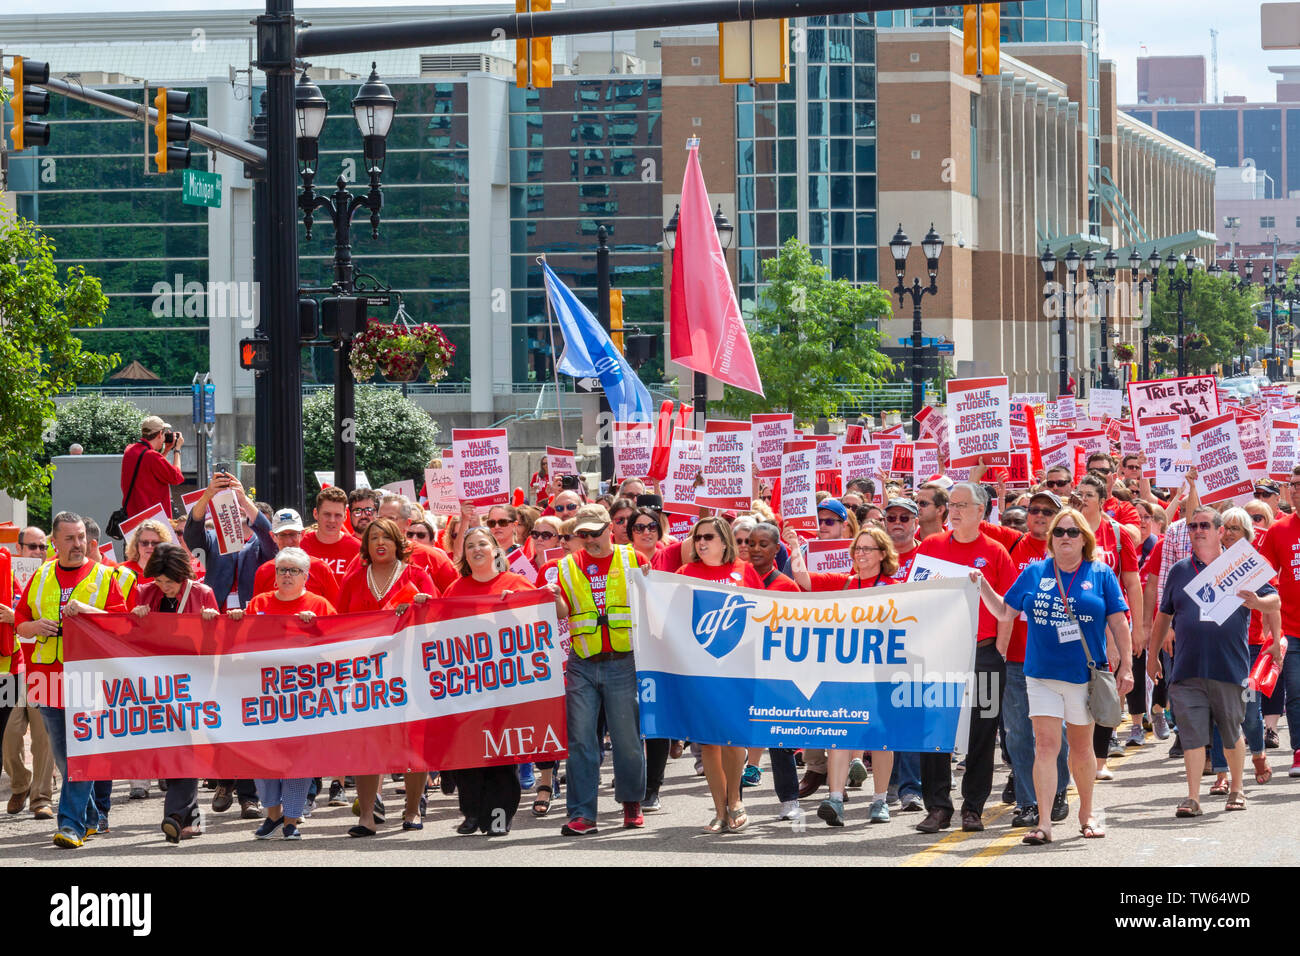 Lansing, Michigan USA – 18 June 2019 – Michigan teachers rallied at the state capitol to demand that the legislature increase funding for public educa - Stock Image